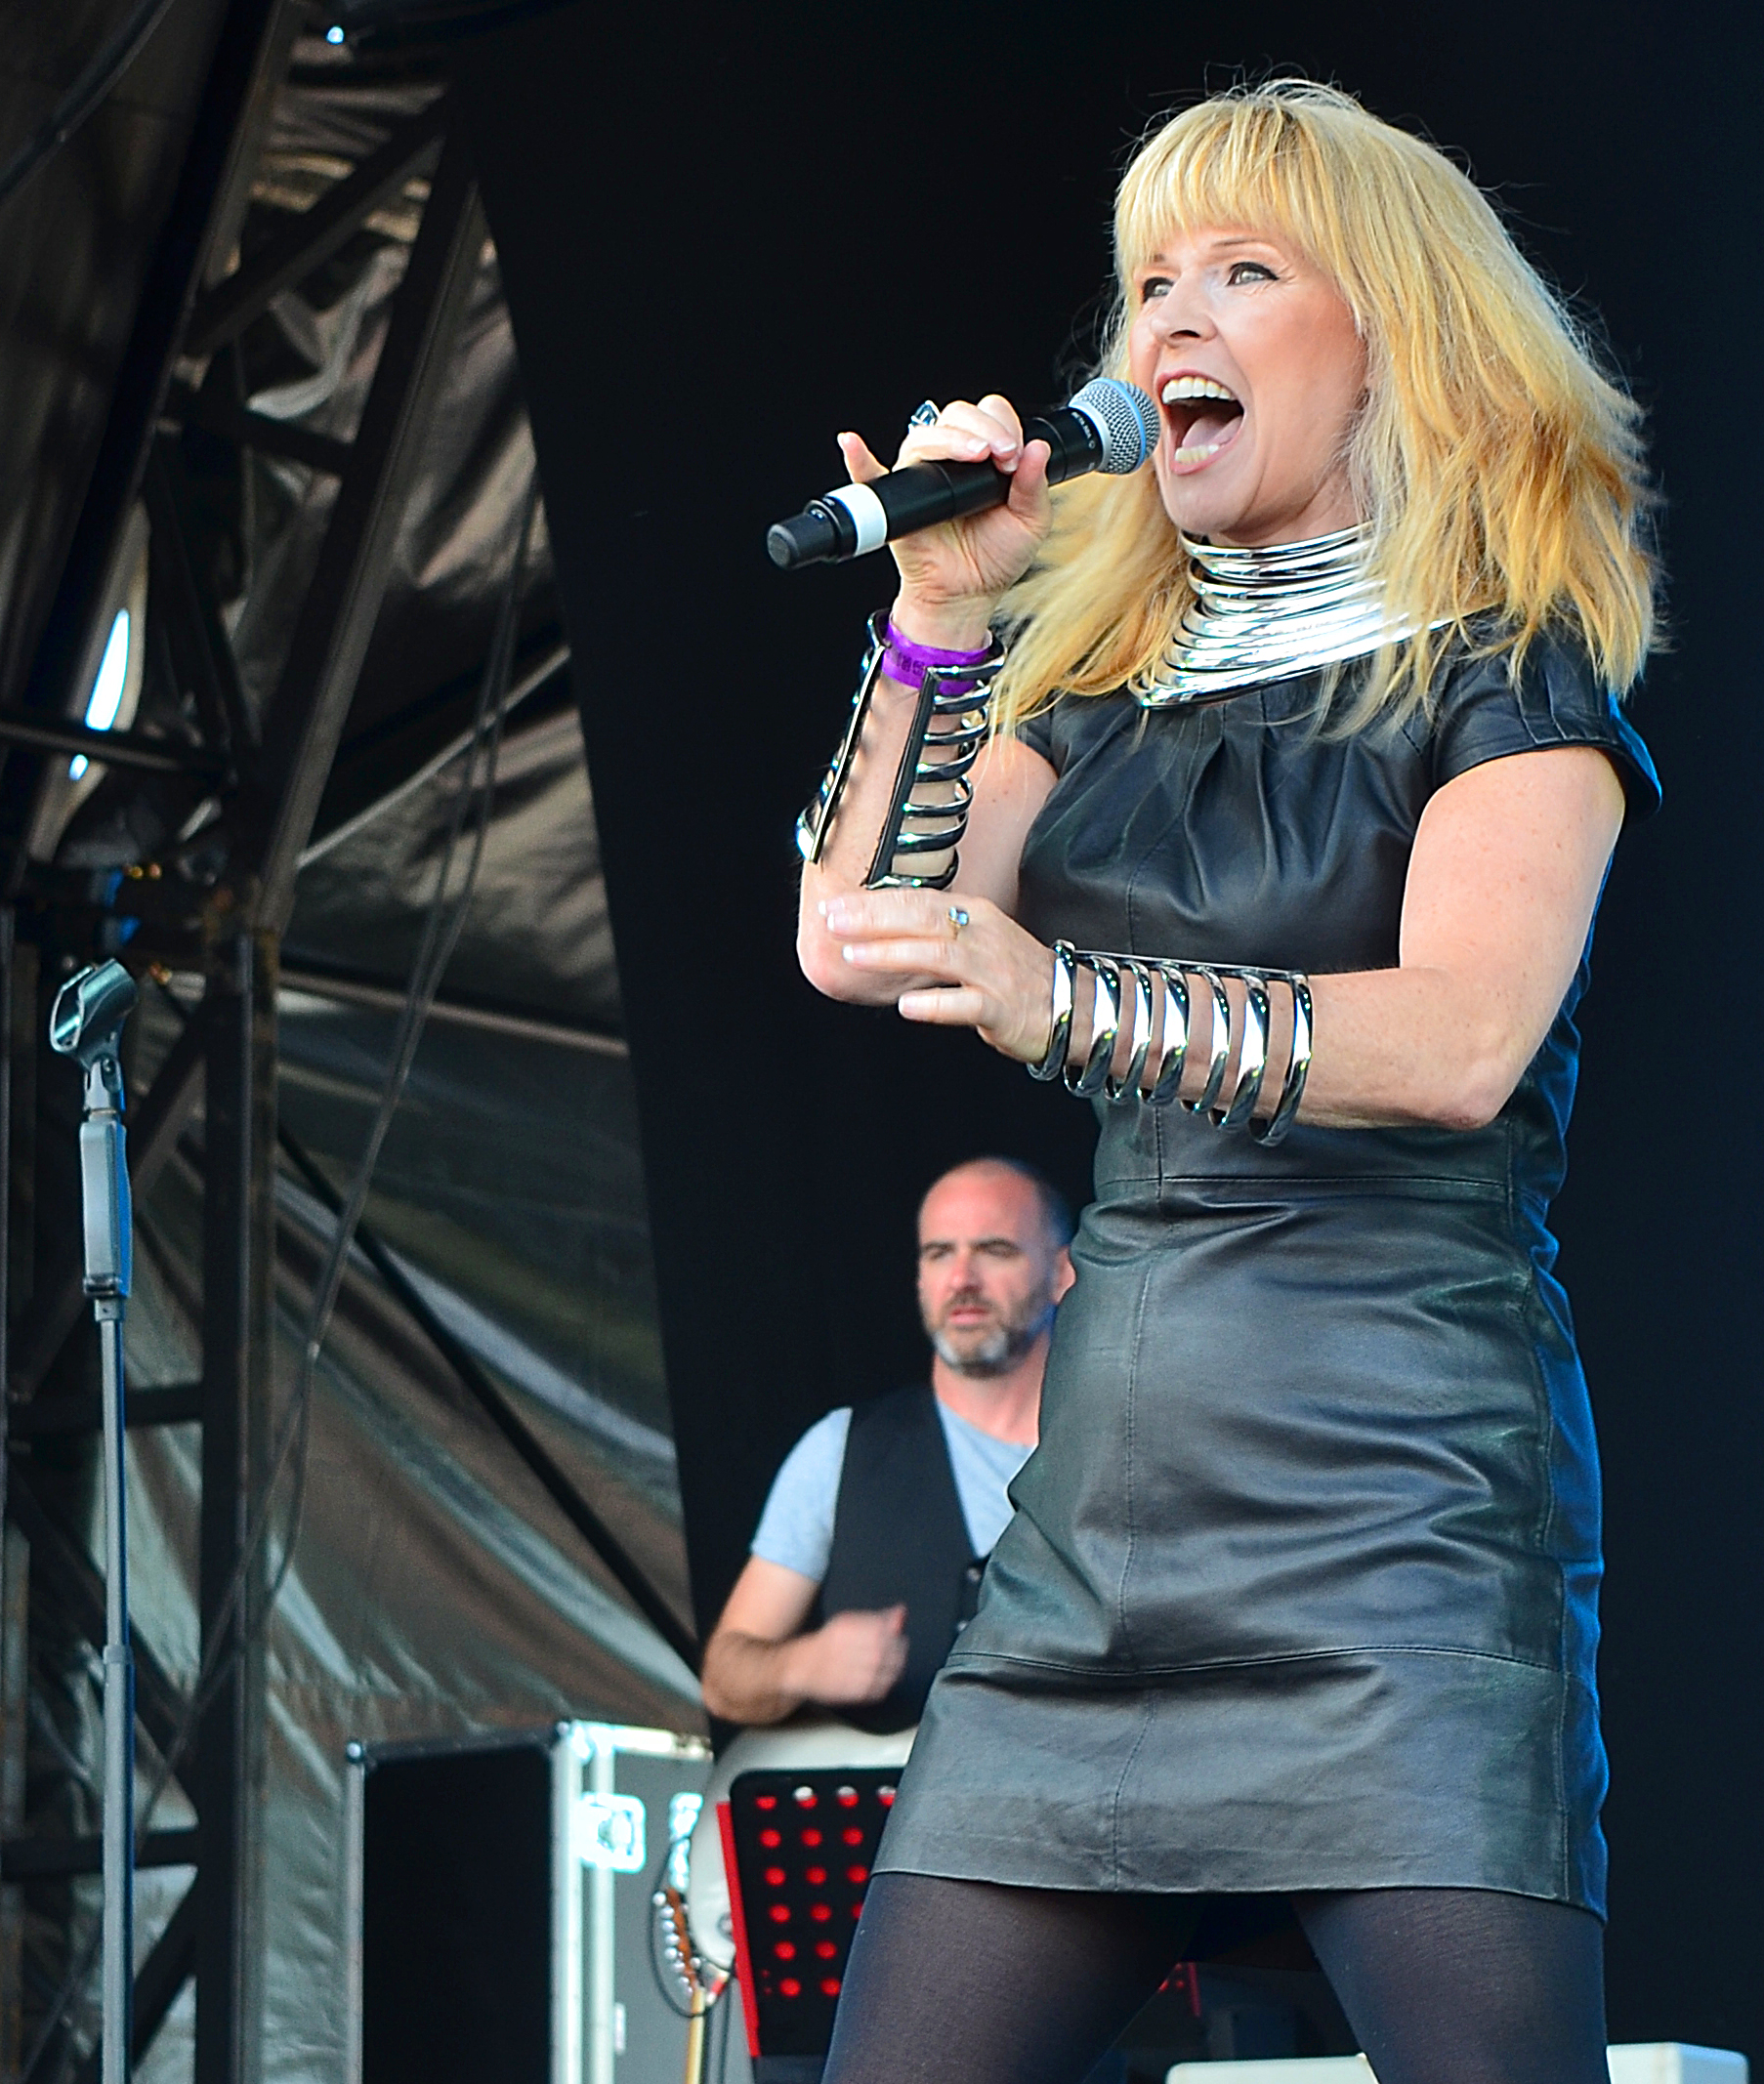 toyah dating Toyah willcox was a punk singer in the eighties, and dressed to match but at 58 she's discovered that the best way to be noticed is to be feminine she demonstrate her newfound love of skirts and dresses.